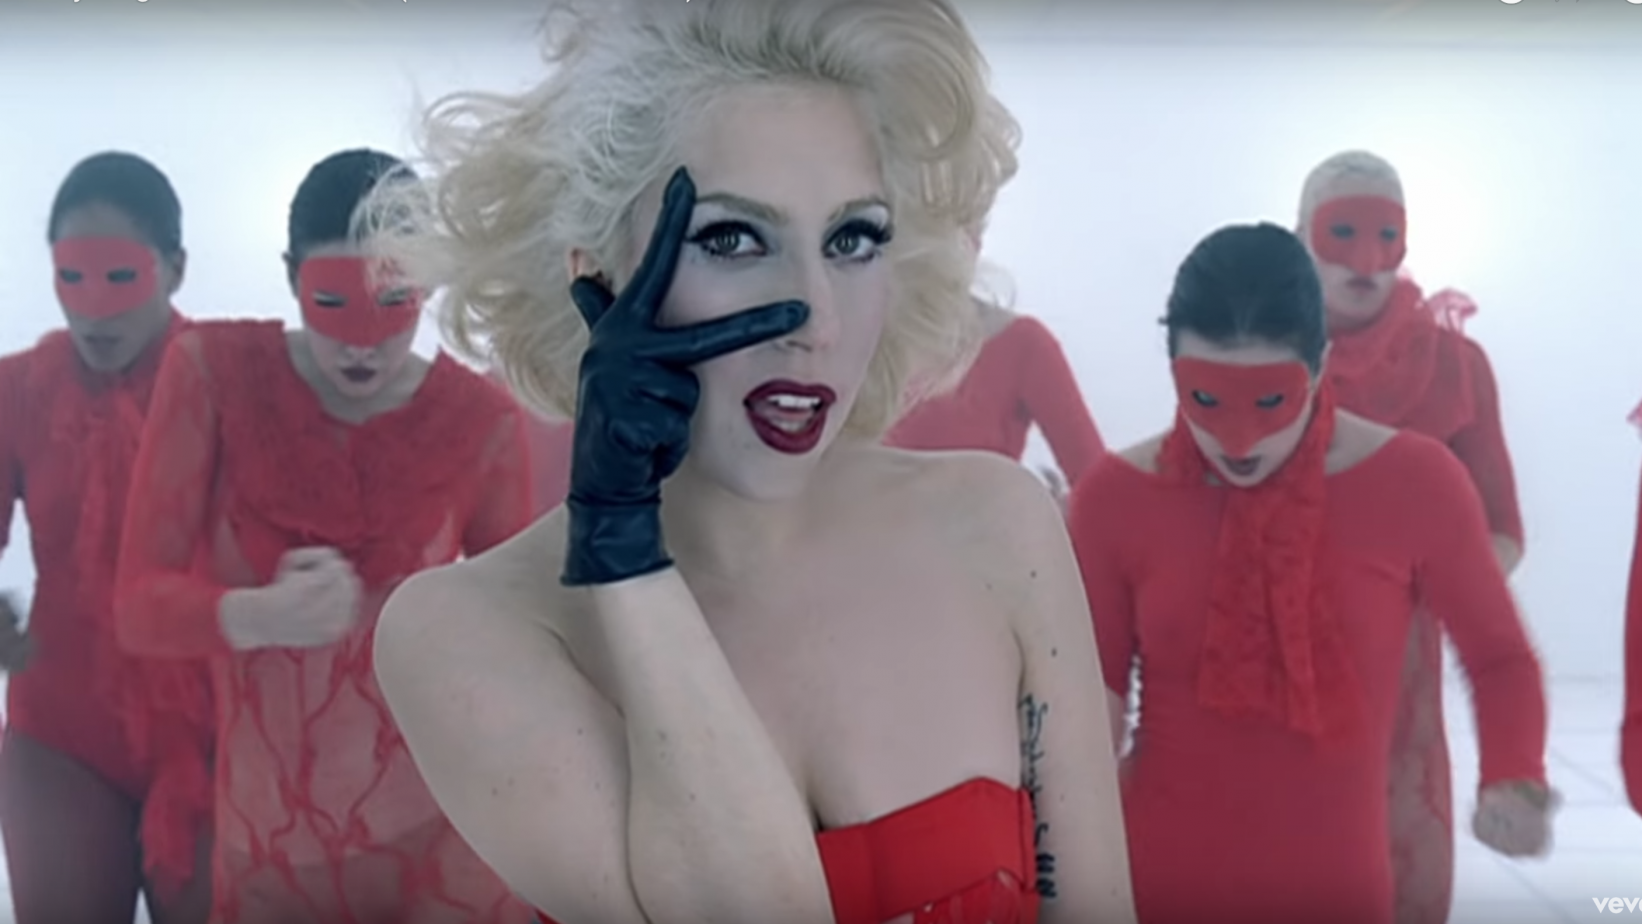 vice.com - Ross McNeilage - 10 years on, how Lady Gaga's 'Bad Romance' influenced music